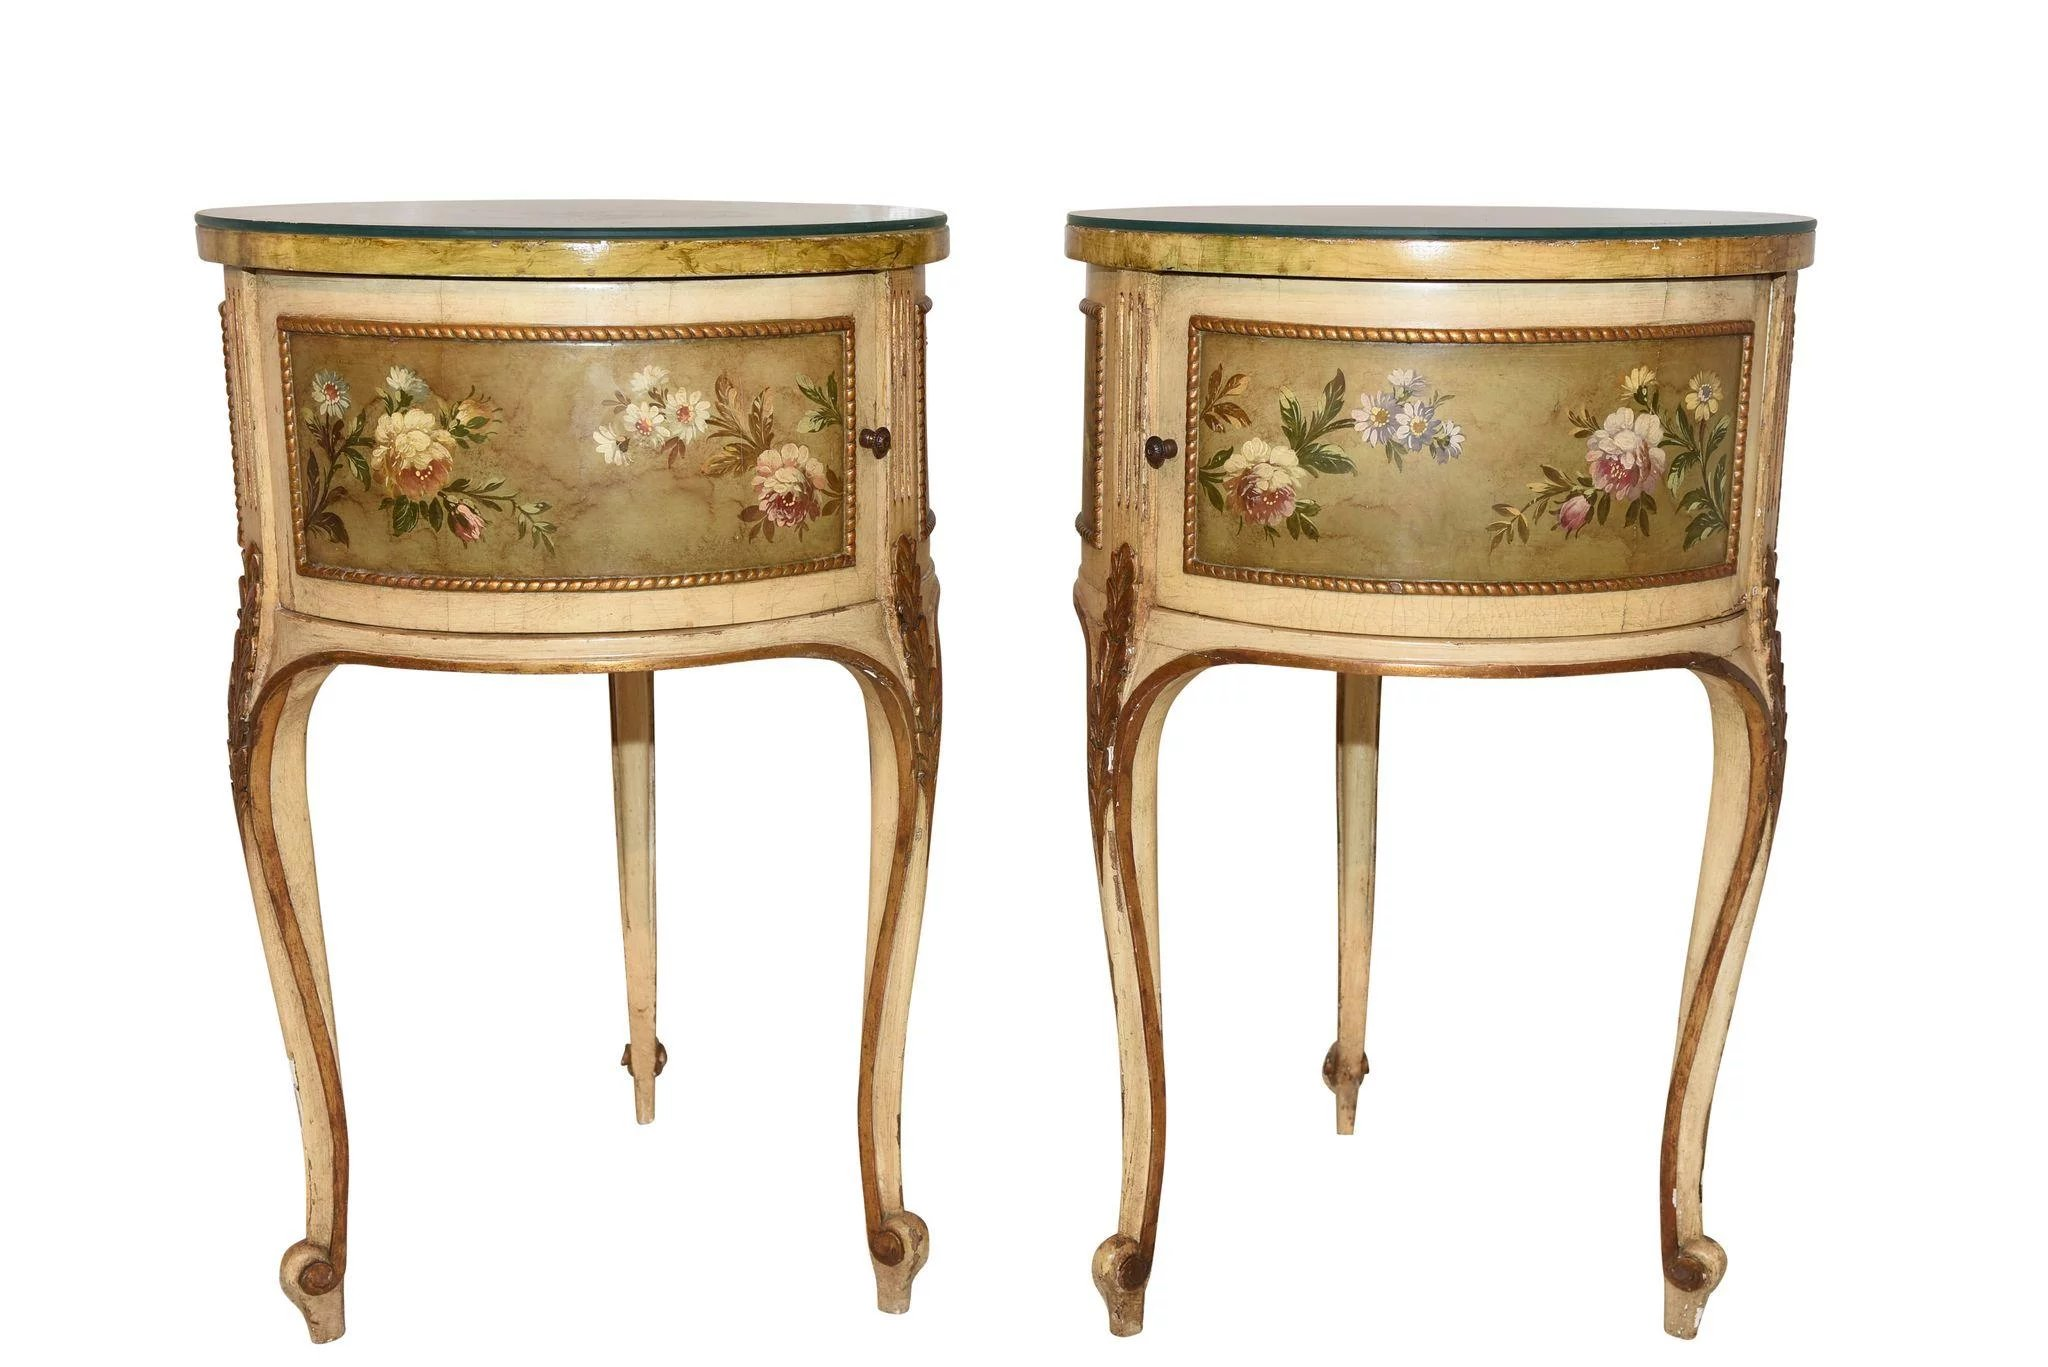 BEAUTIFUL Vintage French Hand Painted Italian Baroque ...